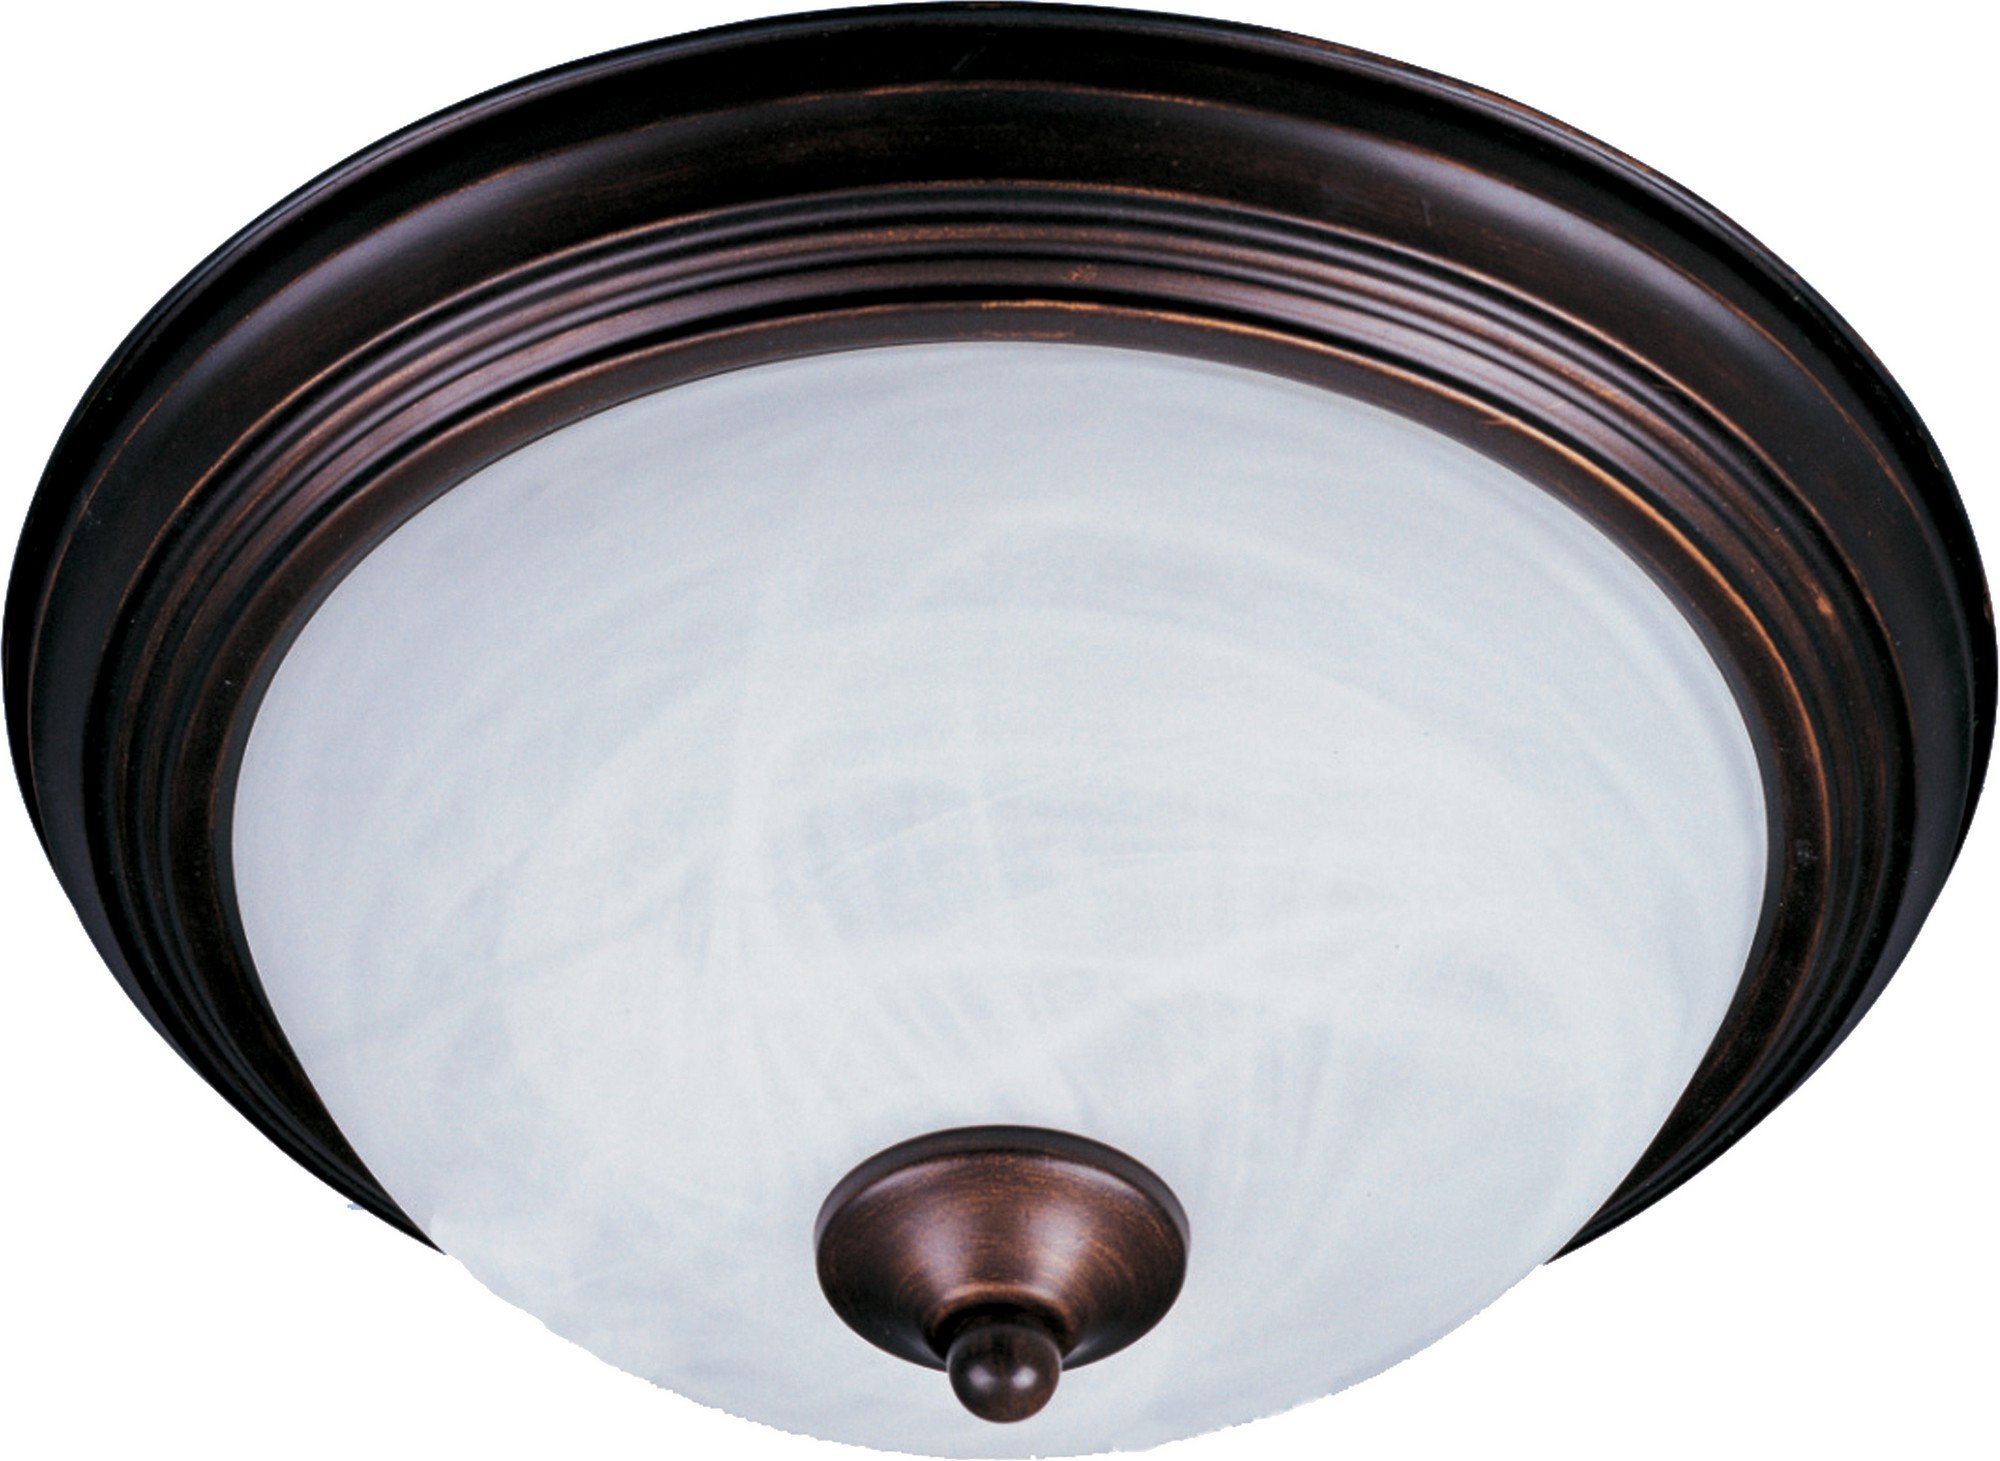 Maxim 5840MROI Essentials 1-Light Flush Mount, Oil Rubbed Bronze Finish, Marble Glass, MB Incandescent Incandescent Bulb , 13W Max., Dry Safety Rating, 2700K Color Temp, Glass Shade Material, 4500 Rated Lumens by Maxim Lighting (Image #2)